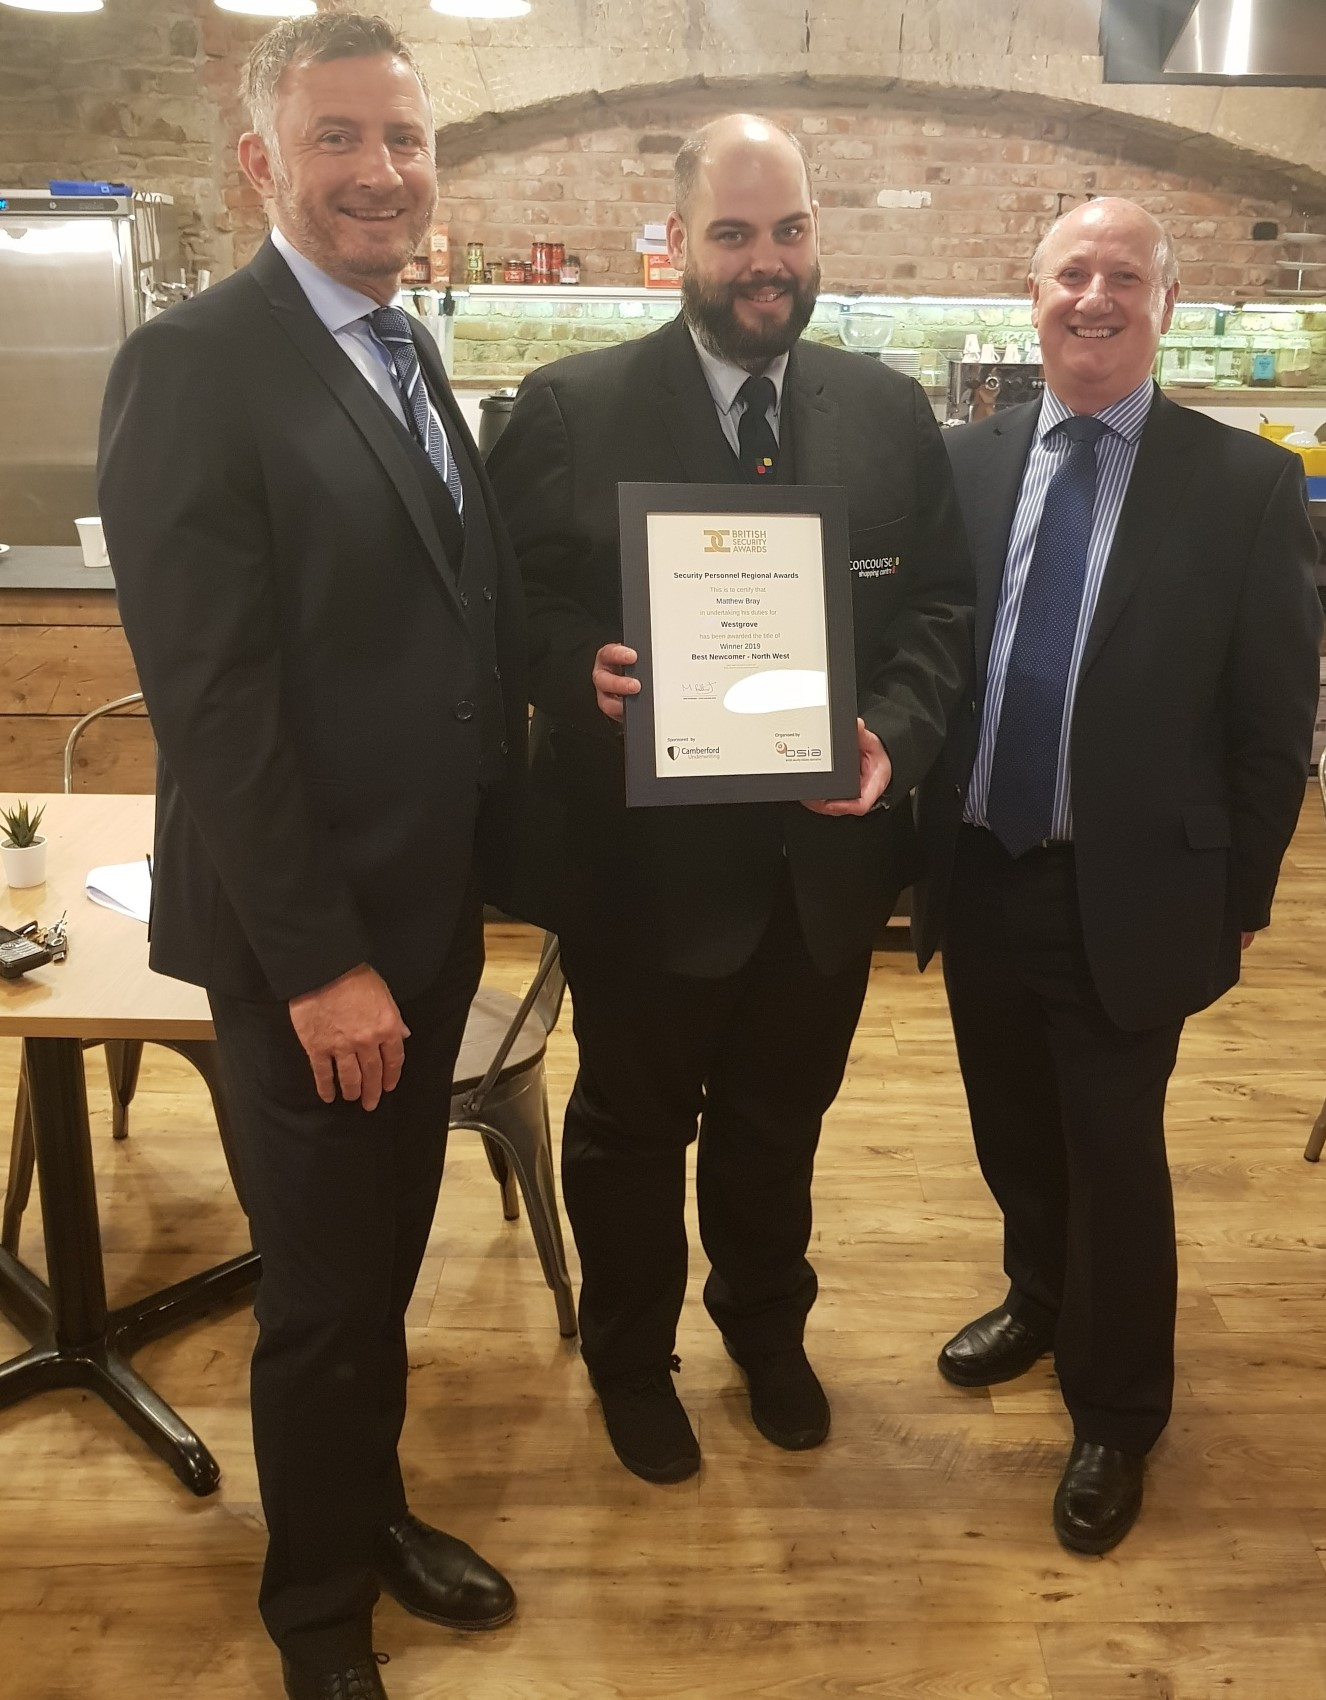 , Concourse Shopping Centre security officer up for national award, Skem News - The Top Source for Skelmersdale News